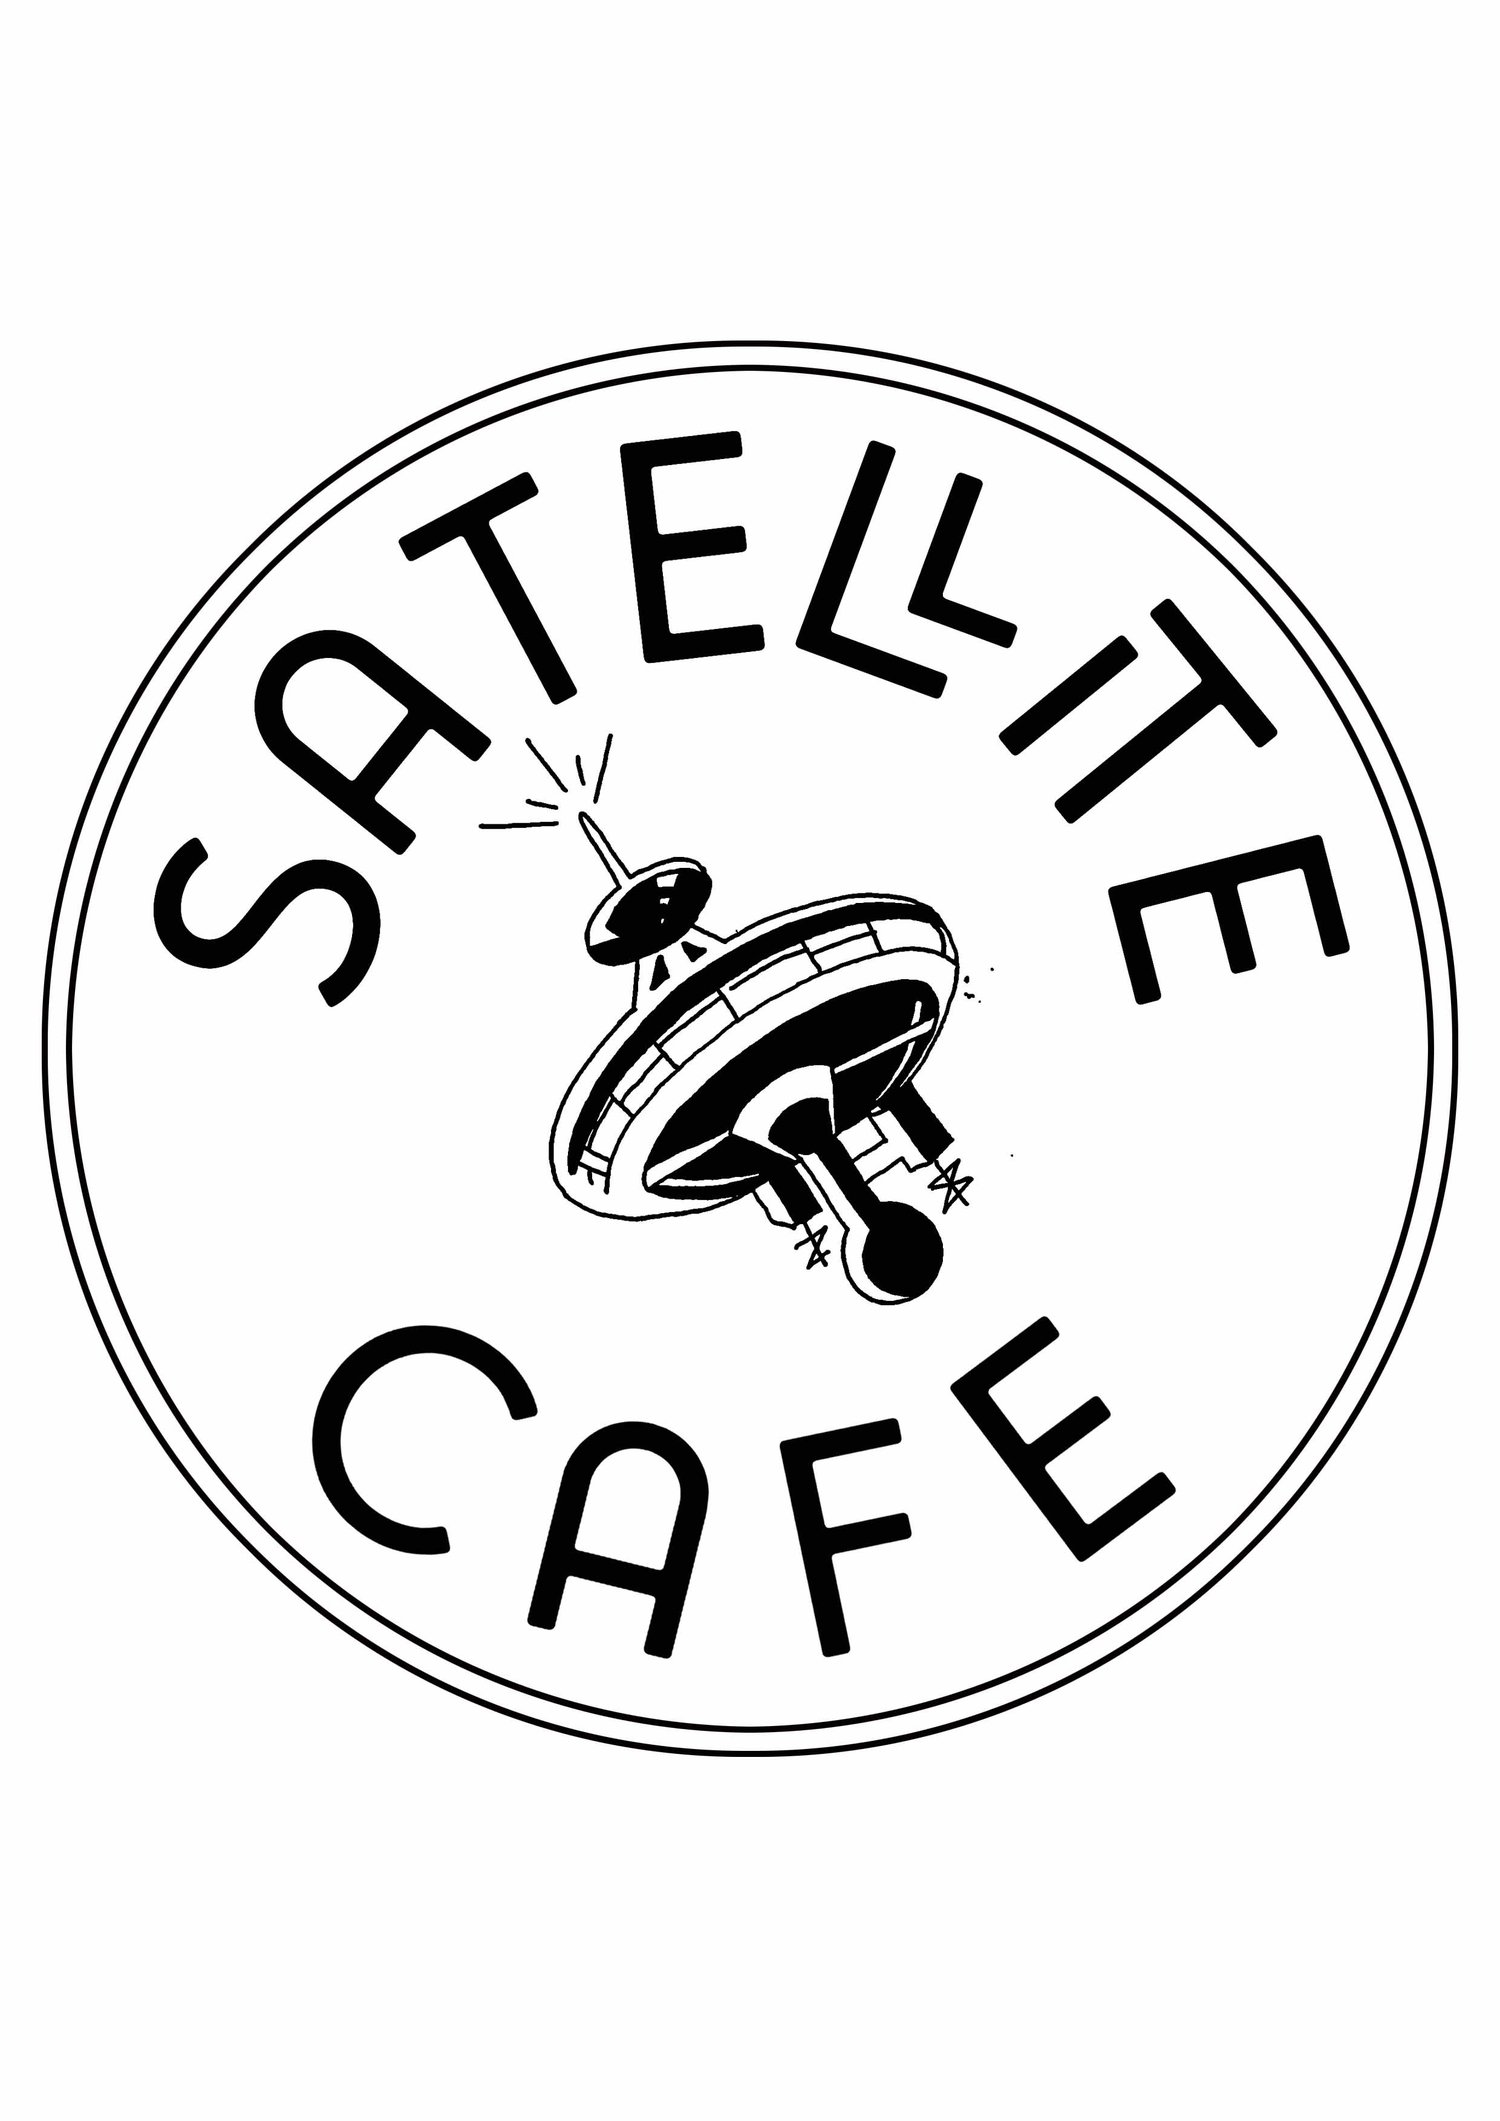 Satellite Cafe